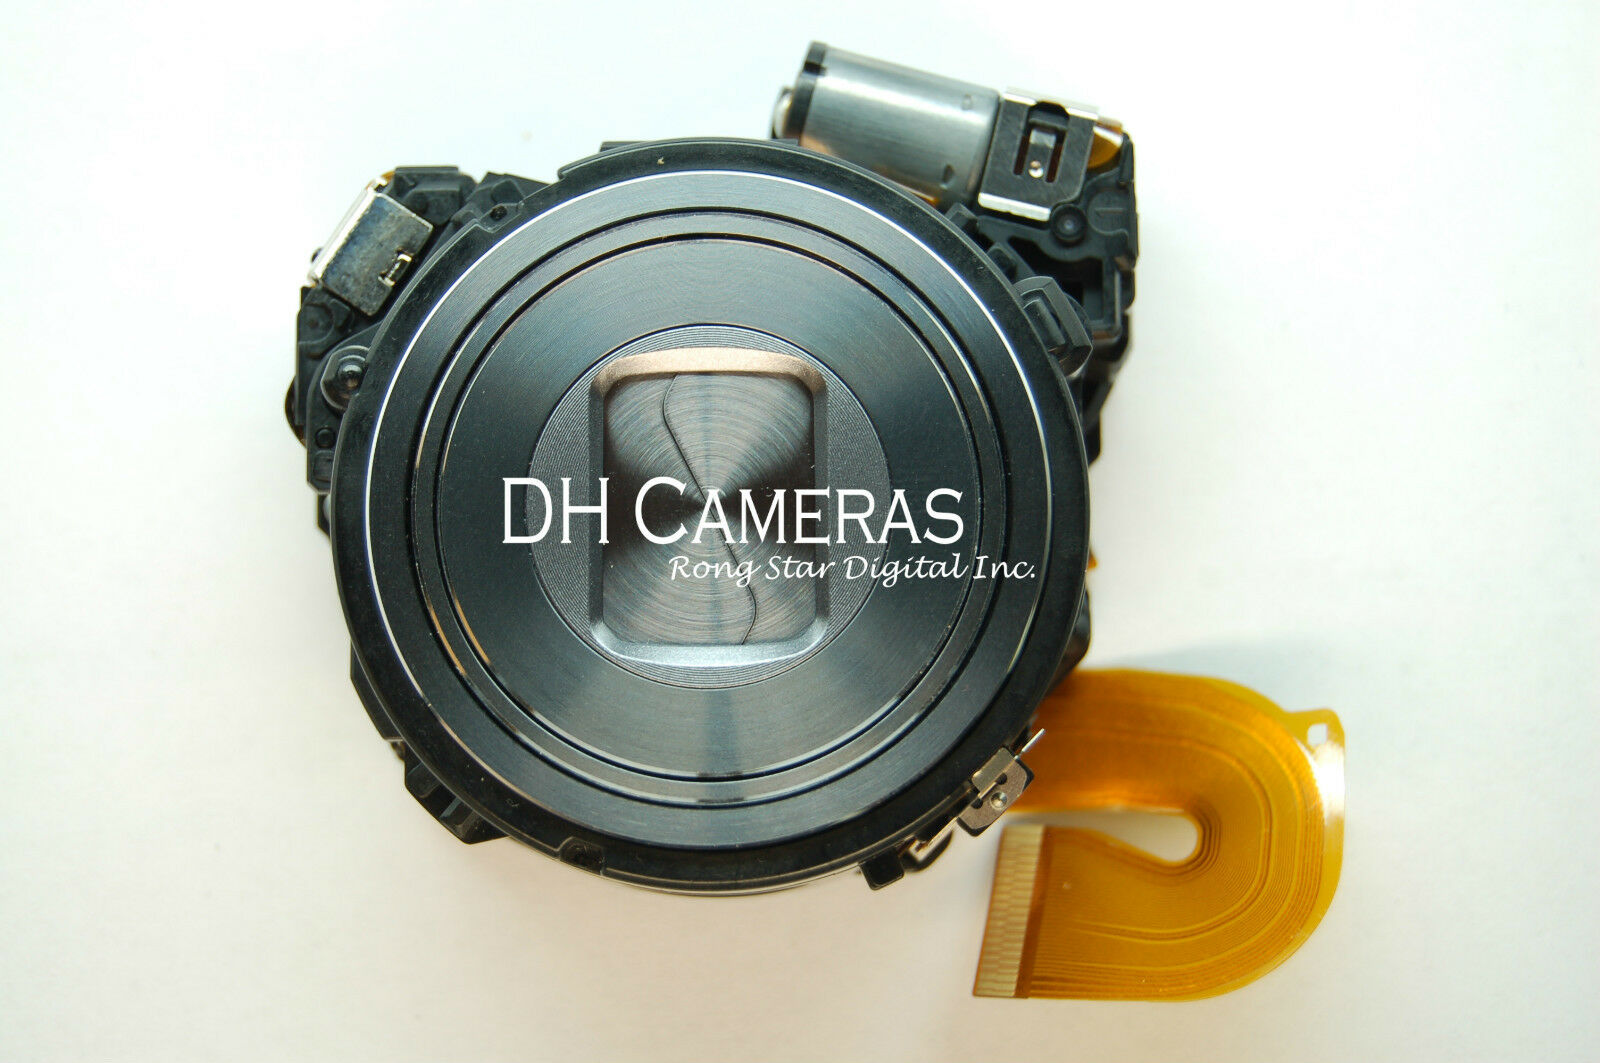 DHcamera Shutter Release Button Repair Part for Sony DSC-H5